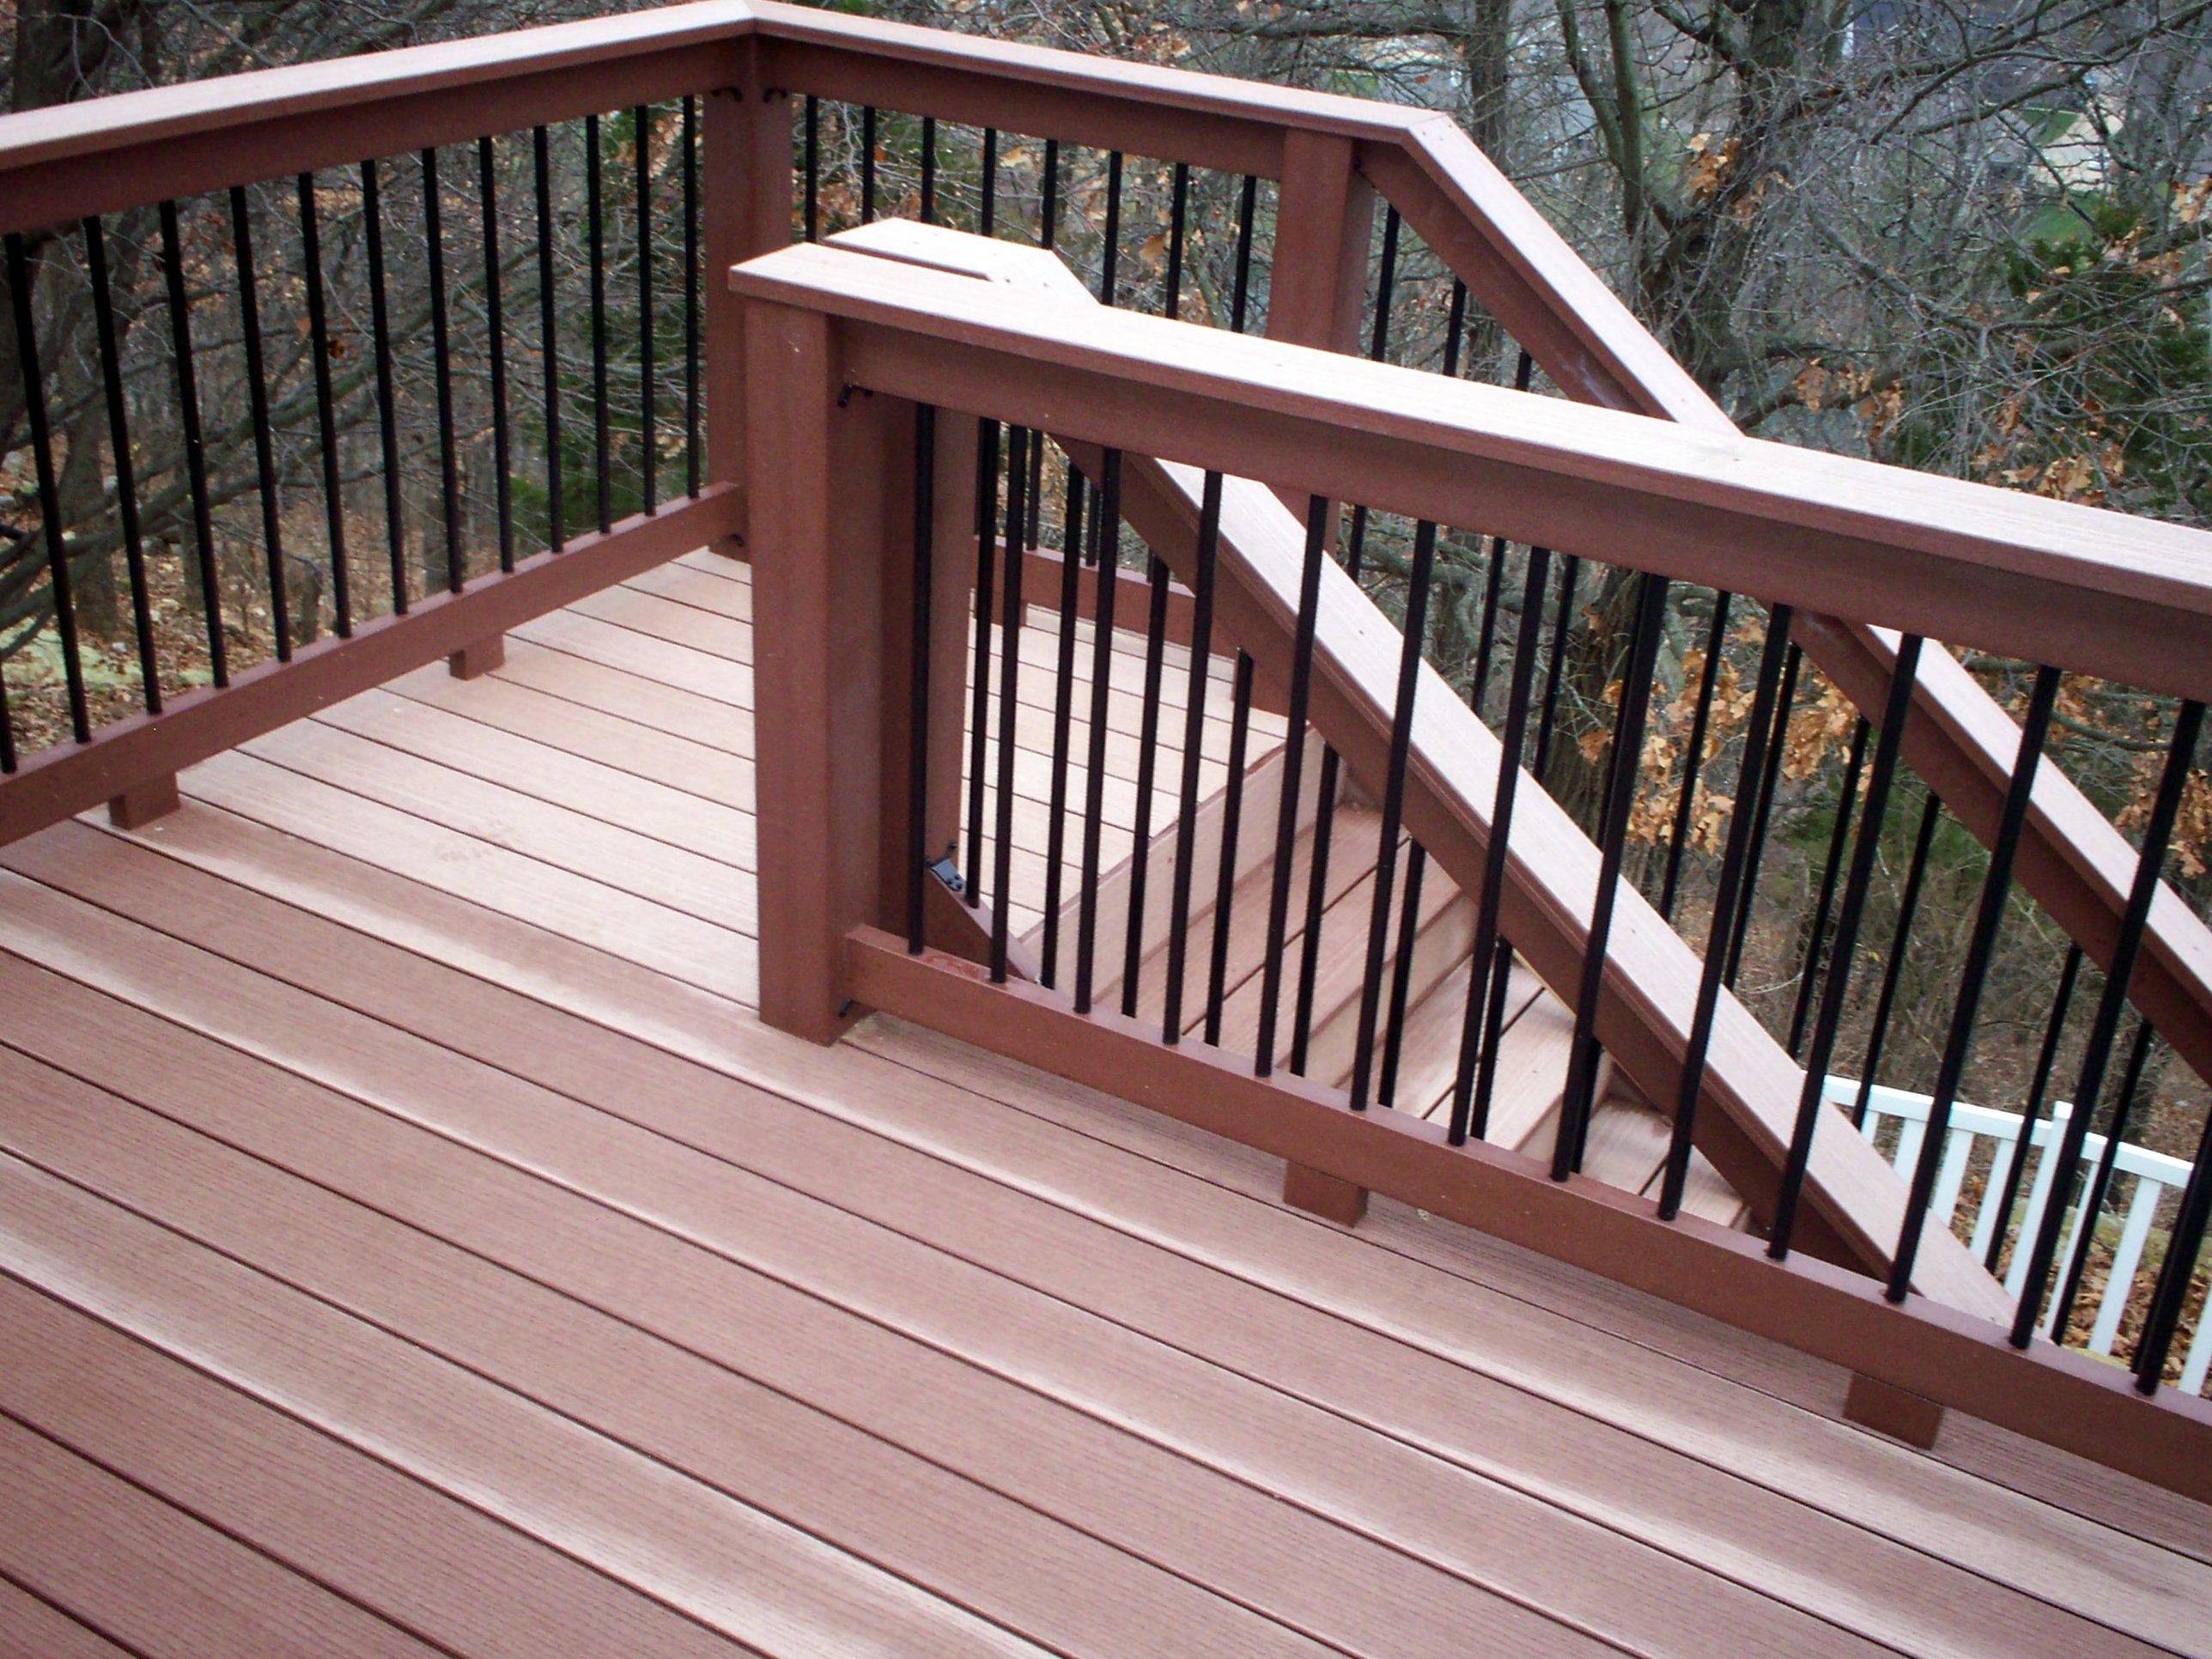 St louis mo trends for outdoor living in 2013 st for Building a composite deck